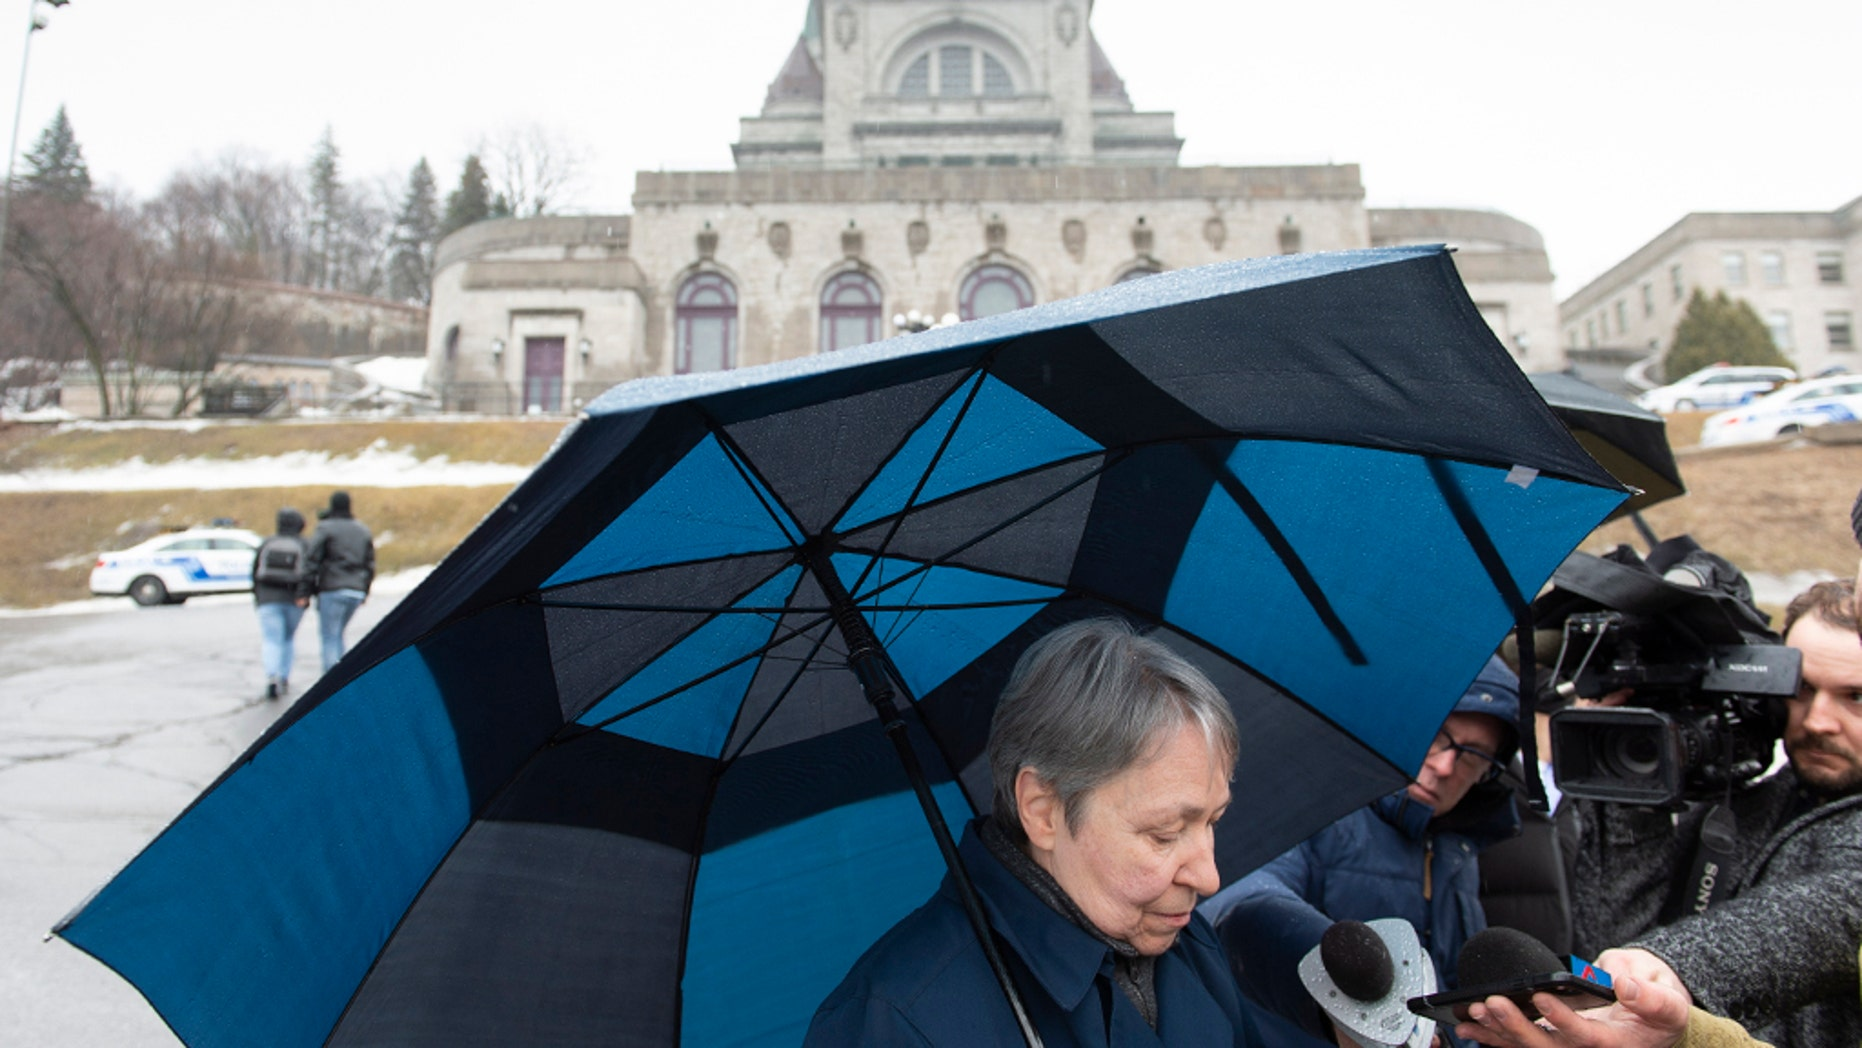 "A woman talks to the media at the scene where a Catholic priest was stabbed for celebrating the morning Mass on Friday, March 22, 201<div class=""e3lan e3lan-in-post1""><script async src=""//pagead2.googlesyndication.com/pagead/js/adsbygoogle.js""></script>